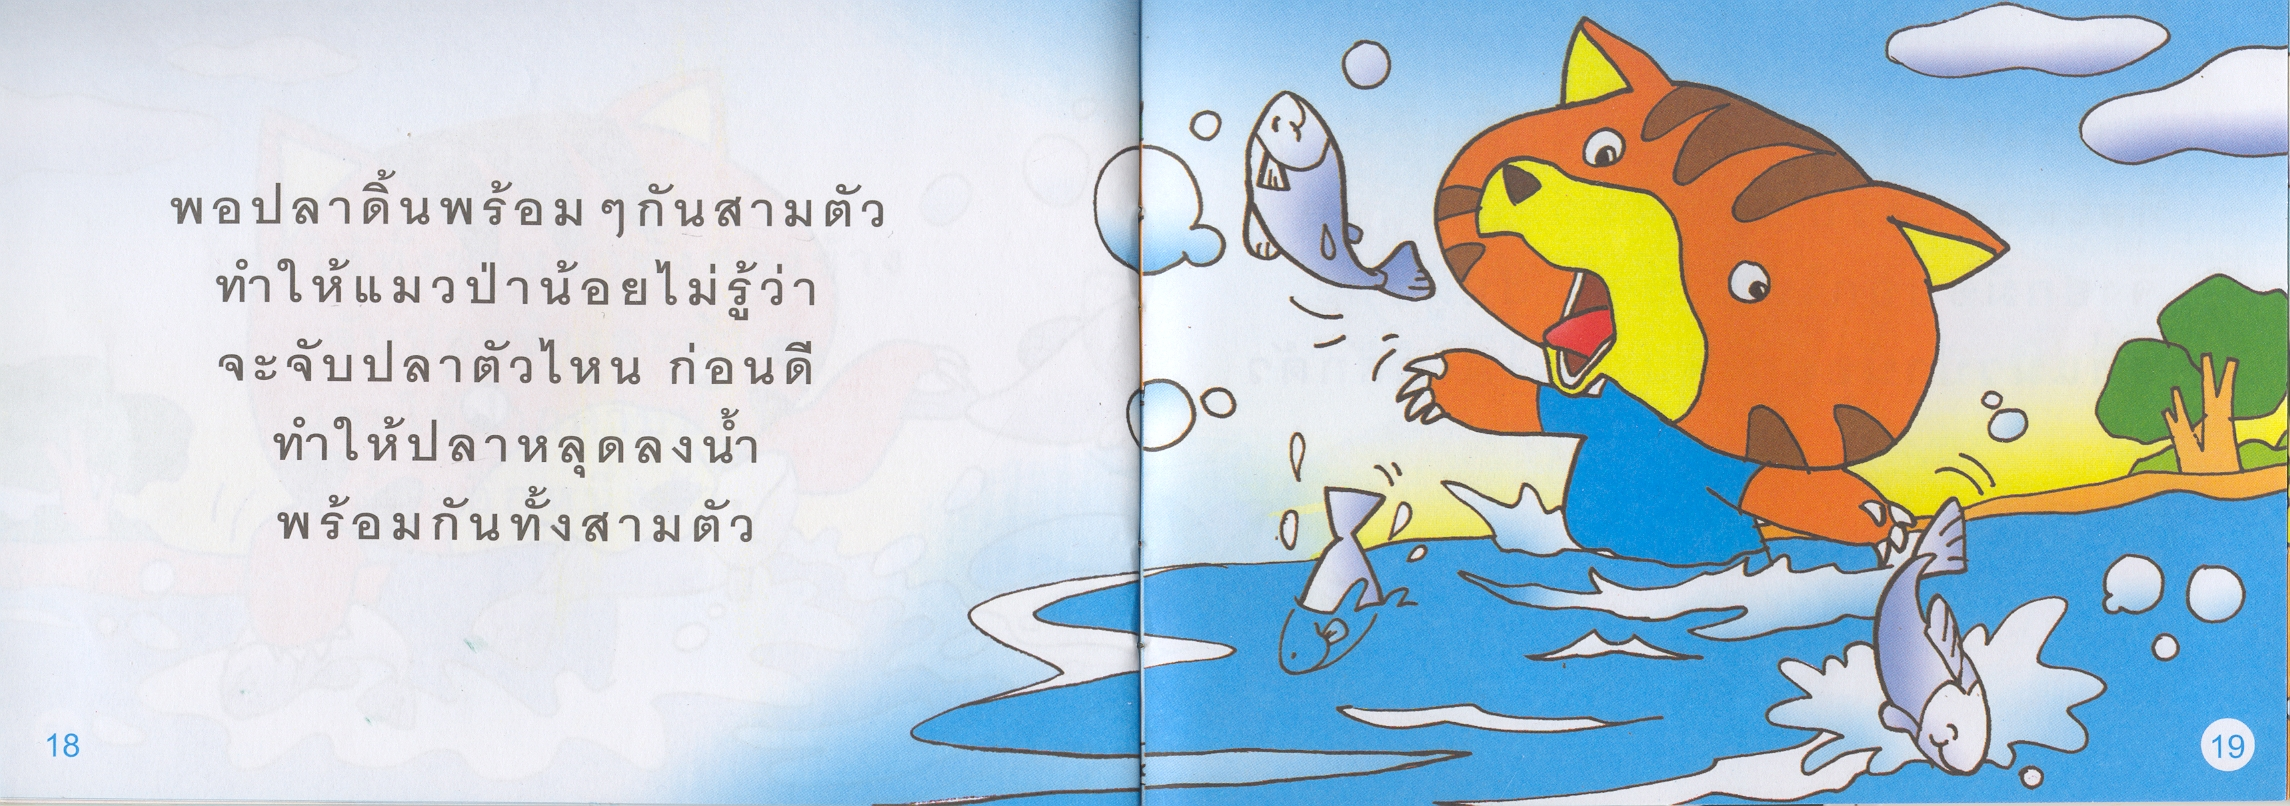 childrens with Book4 on Tribese 004 in addition Number Card1 also Kodomo co as well A likewise Childrensworlduk.